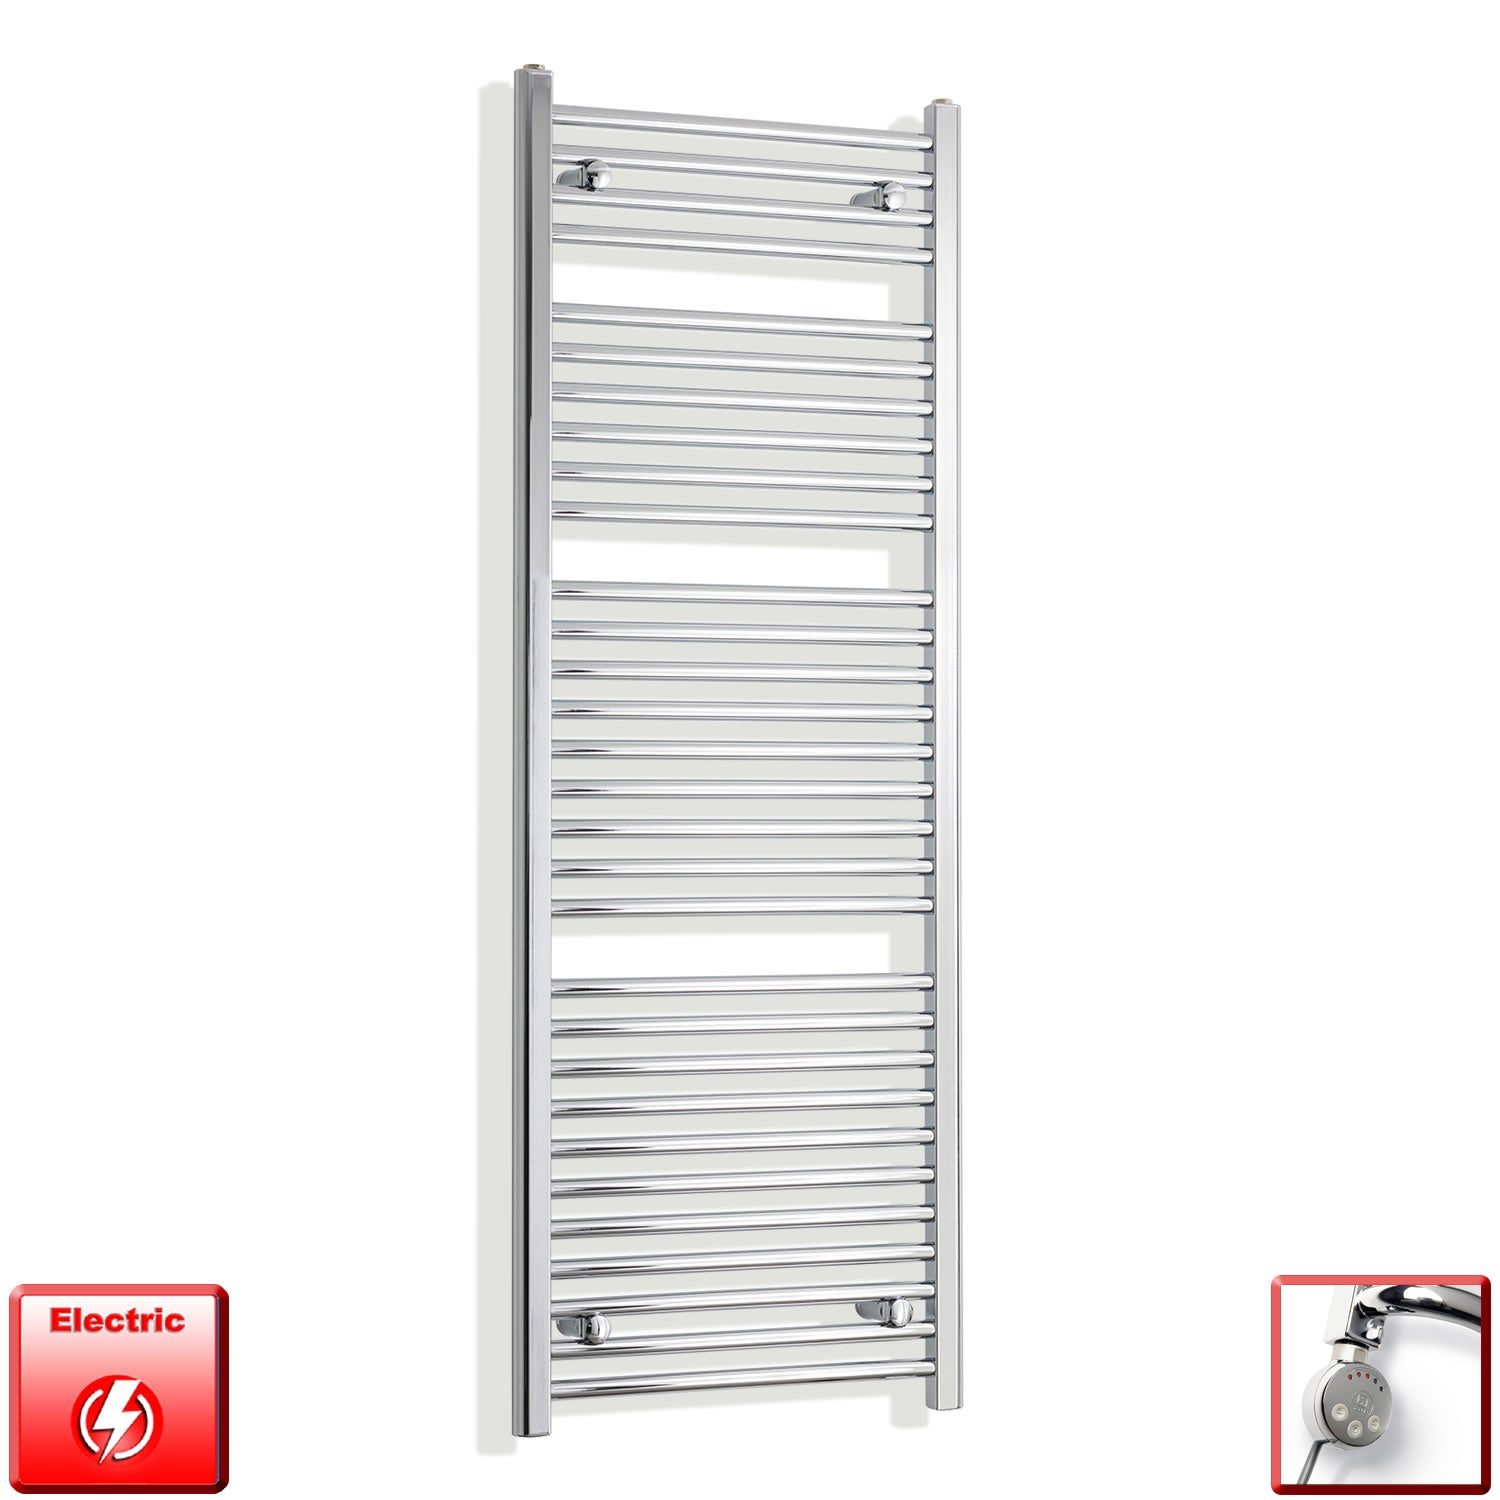 450mm Wide 1500mm High Flat Or Curved Chrome Pre-Filled Electric Heated Towel Rail Radiator HTR,MEG Thermostatic Element / Straight